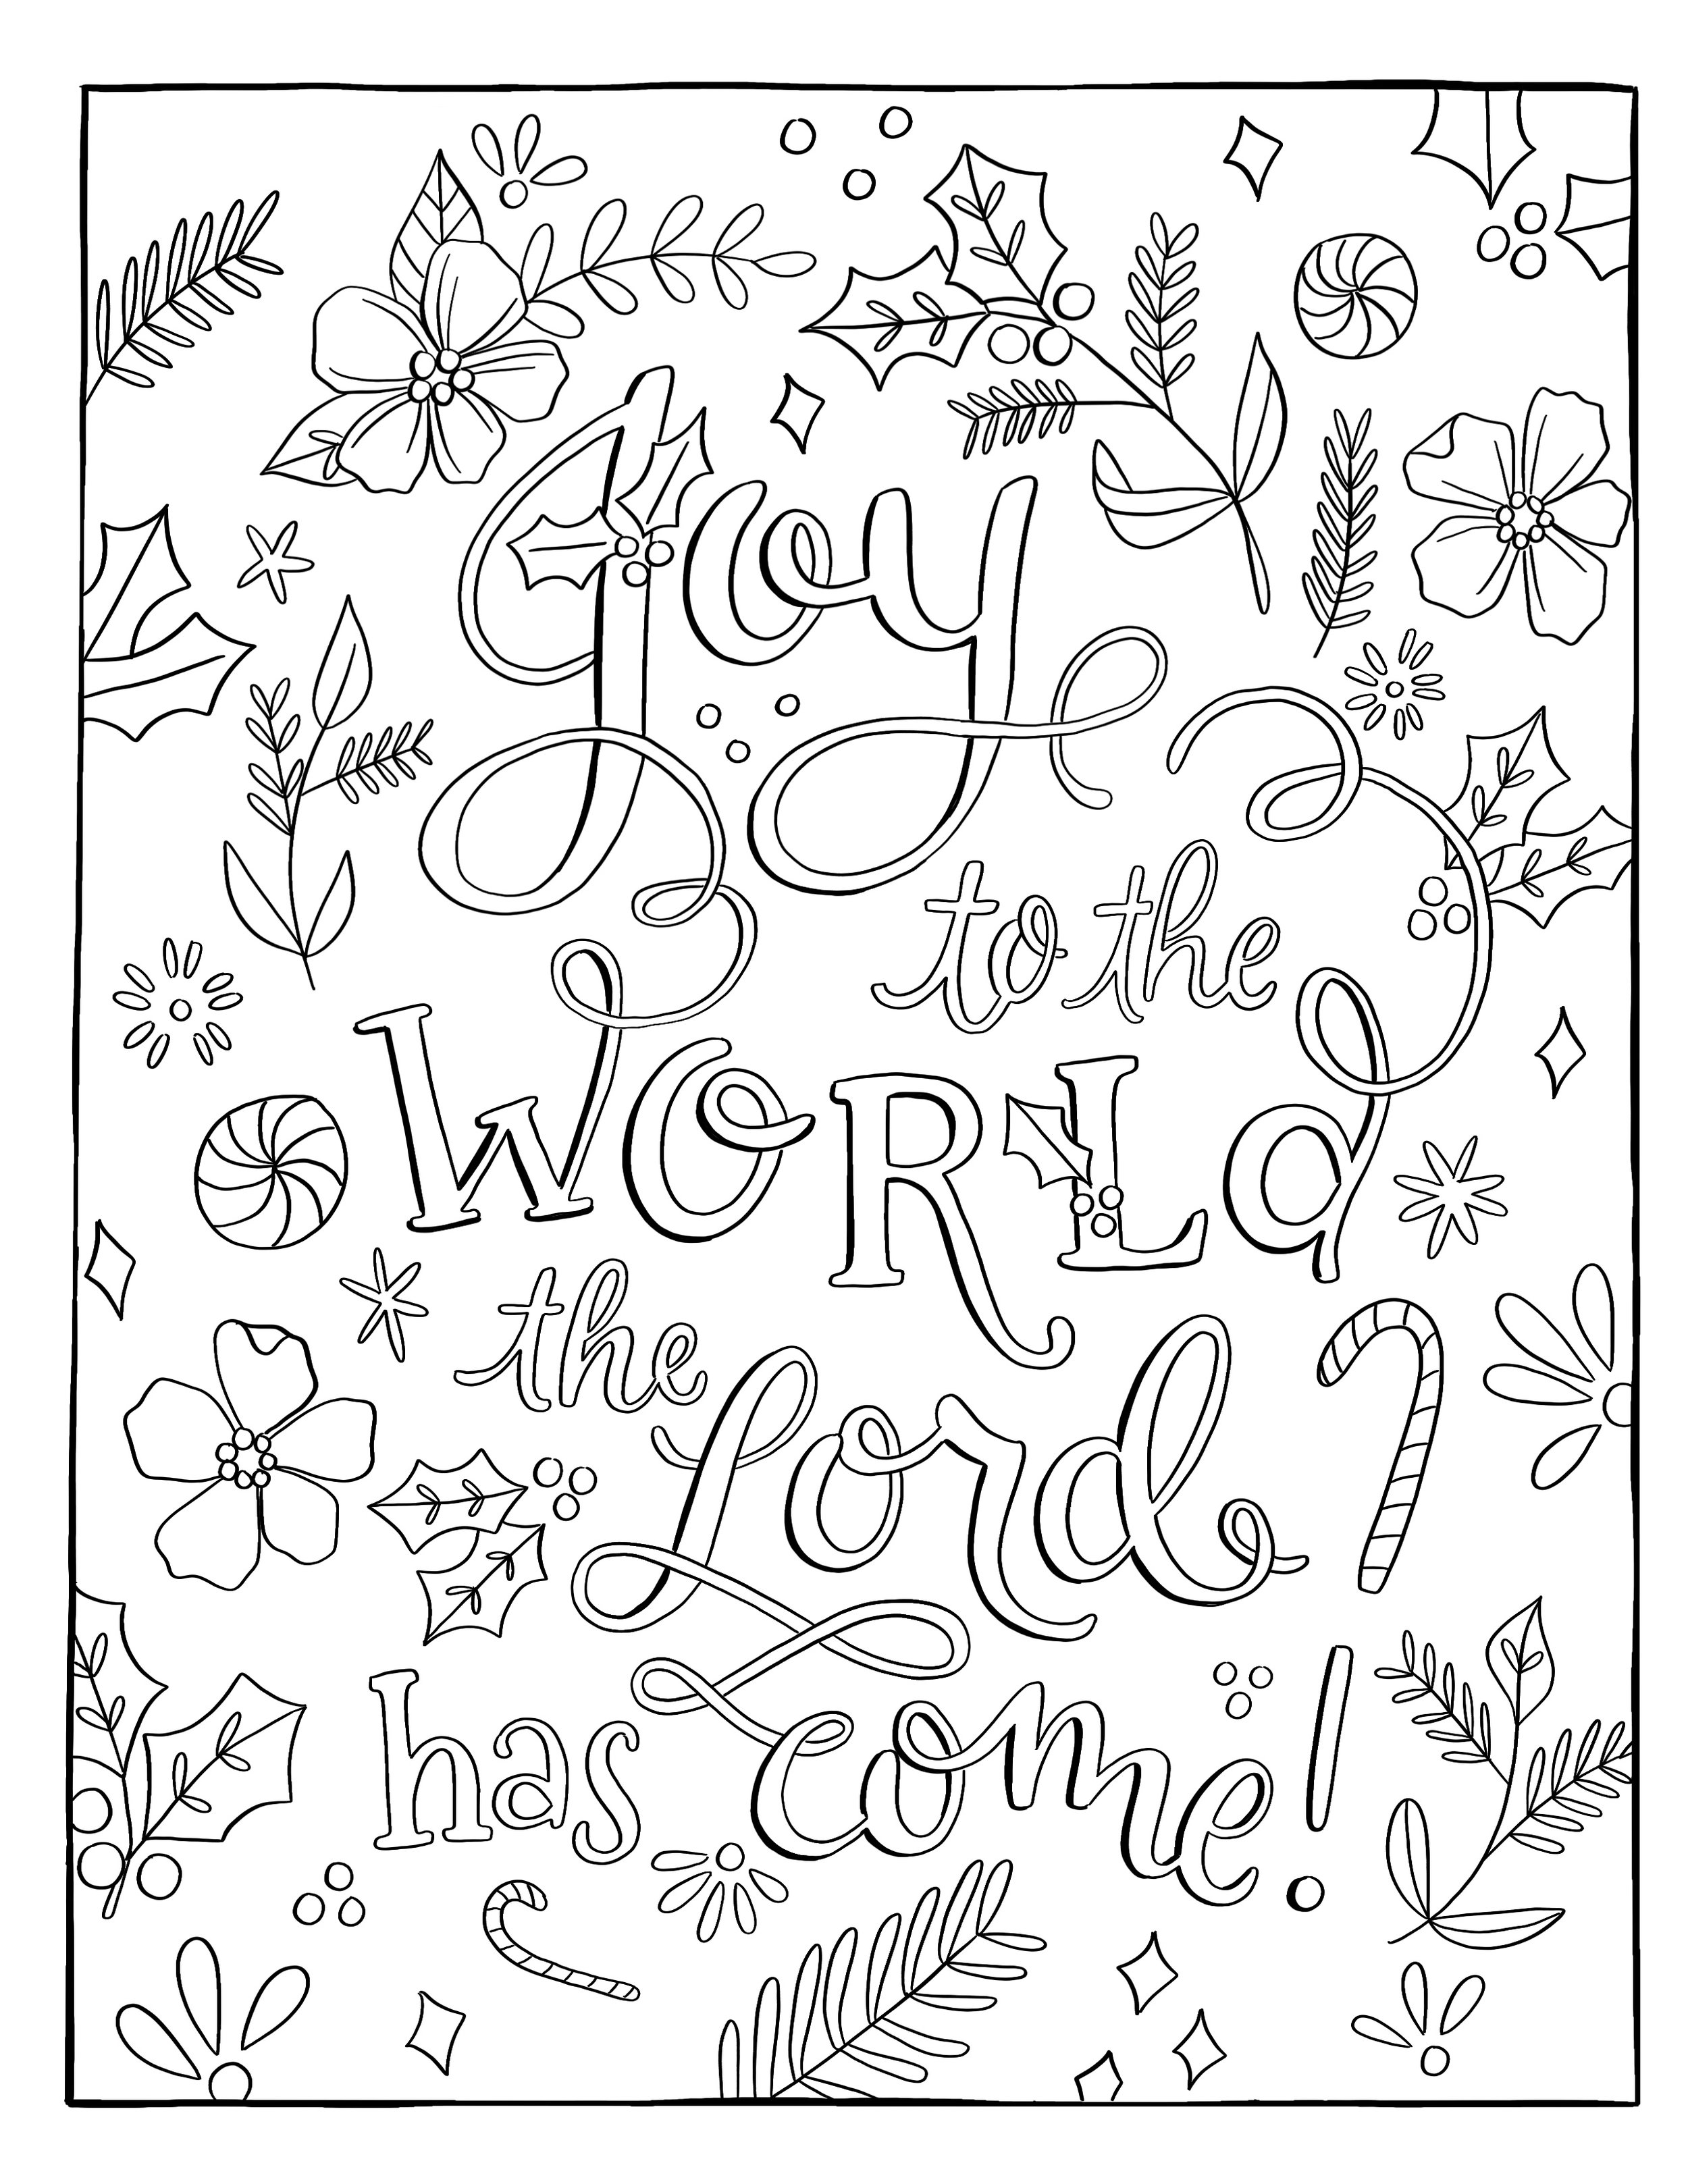 Makewells Joy to the World Coloring Page.jpg